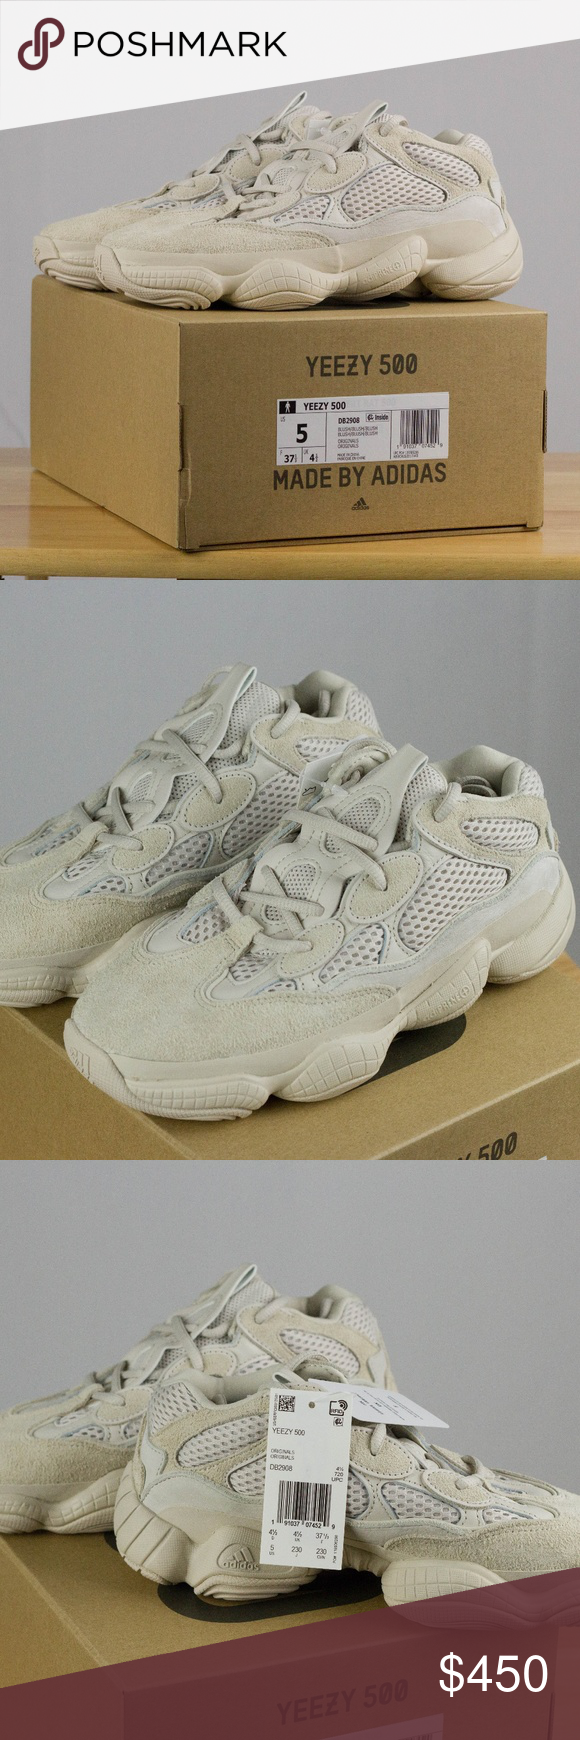 19c50c0bed2 YEEZY ADIDAS DESERT RAT BLUSH  SIZE 5  WOMENS 6.5 DEADSTOCK BRAND NEW IN BOX